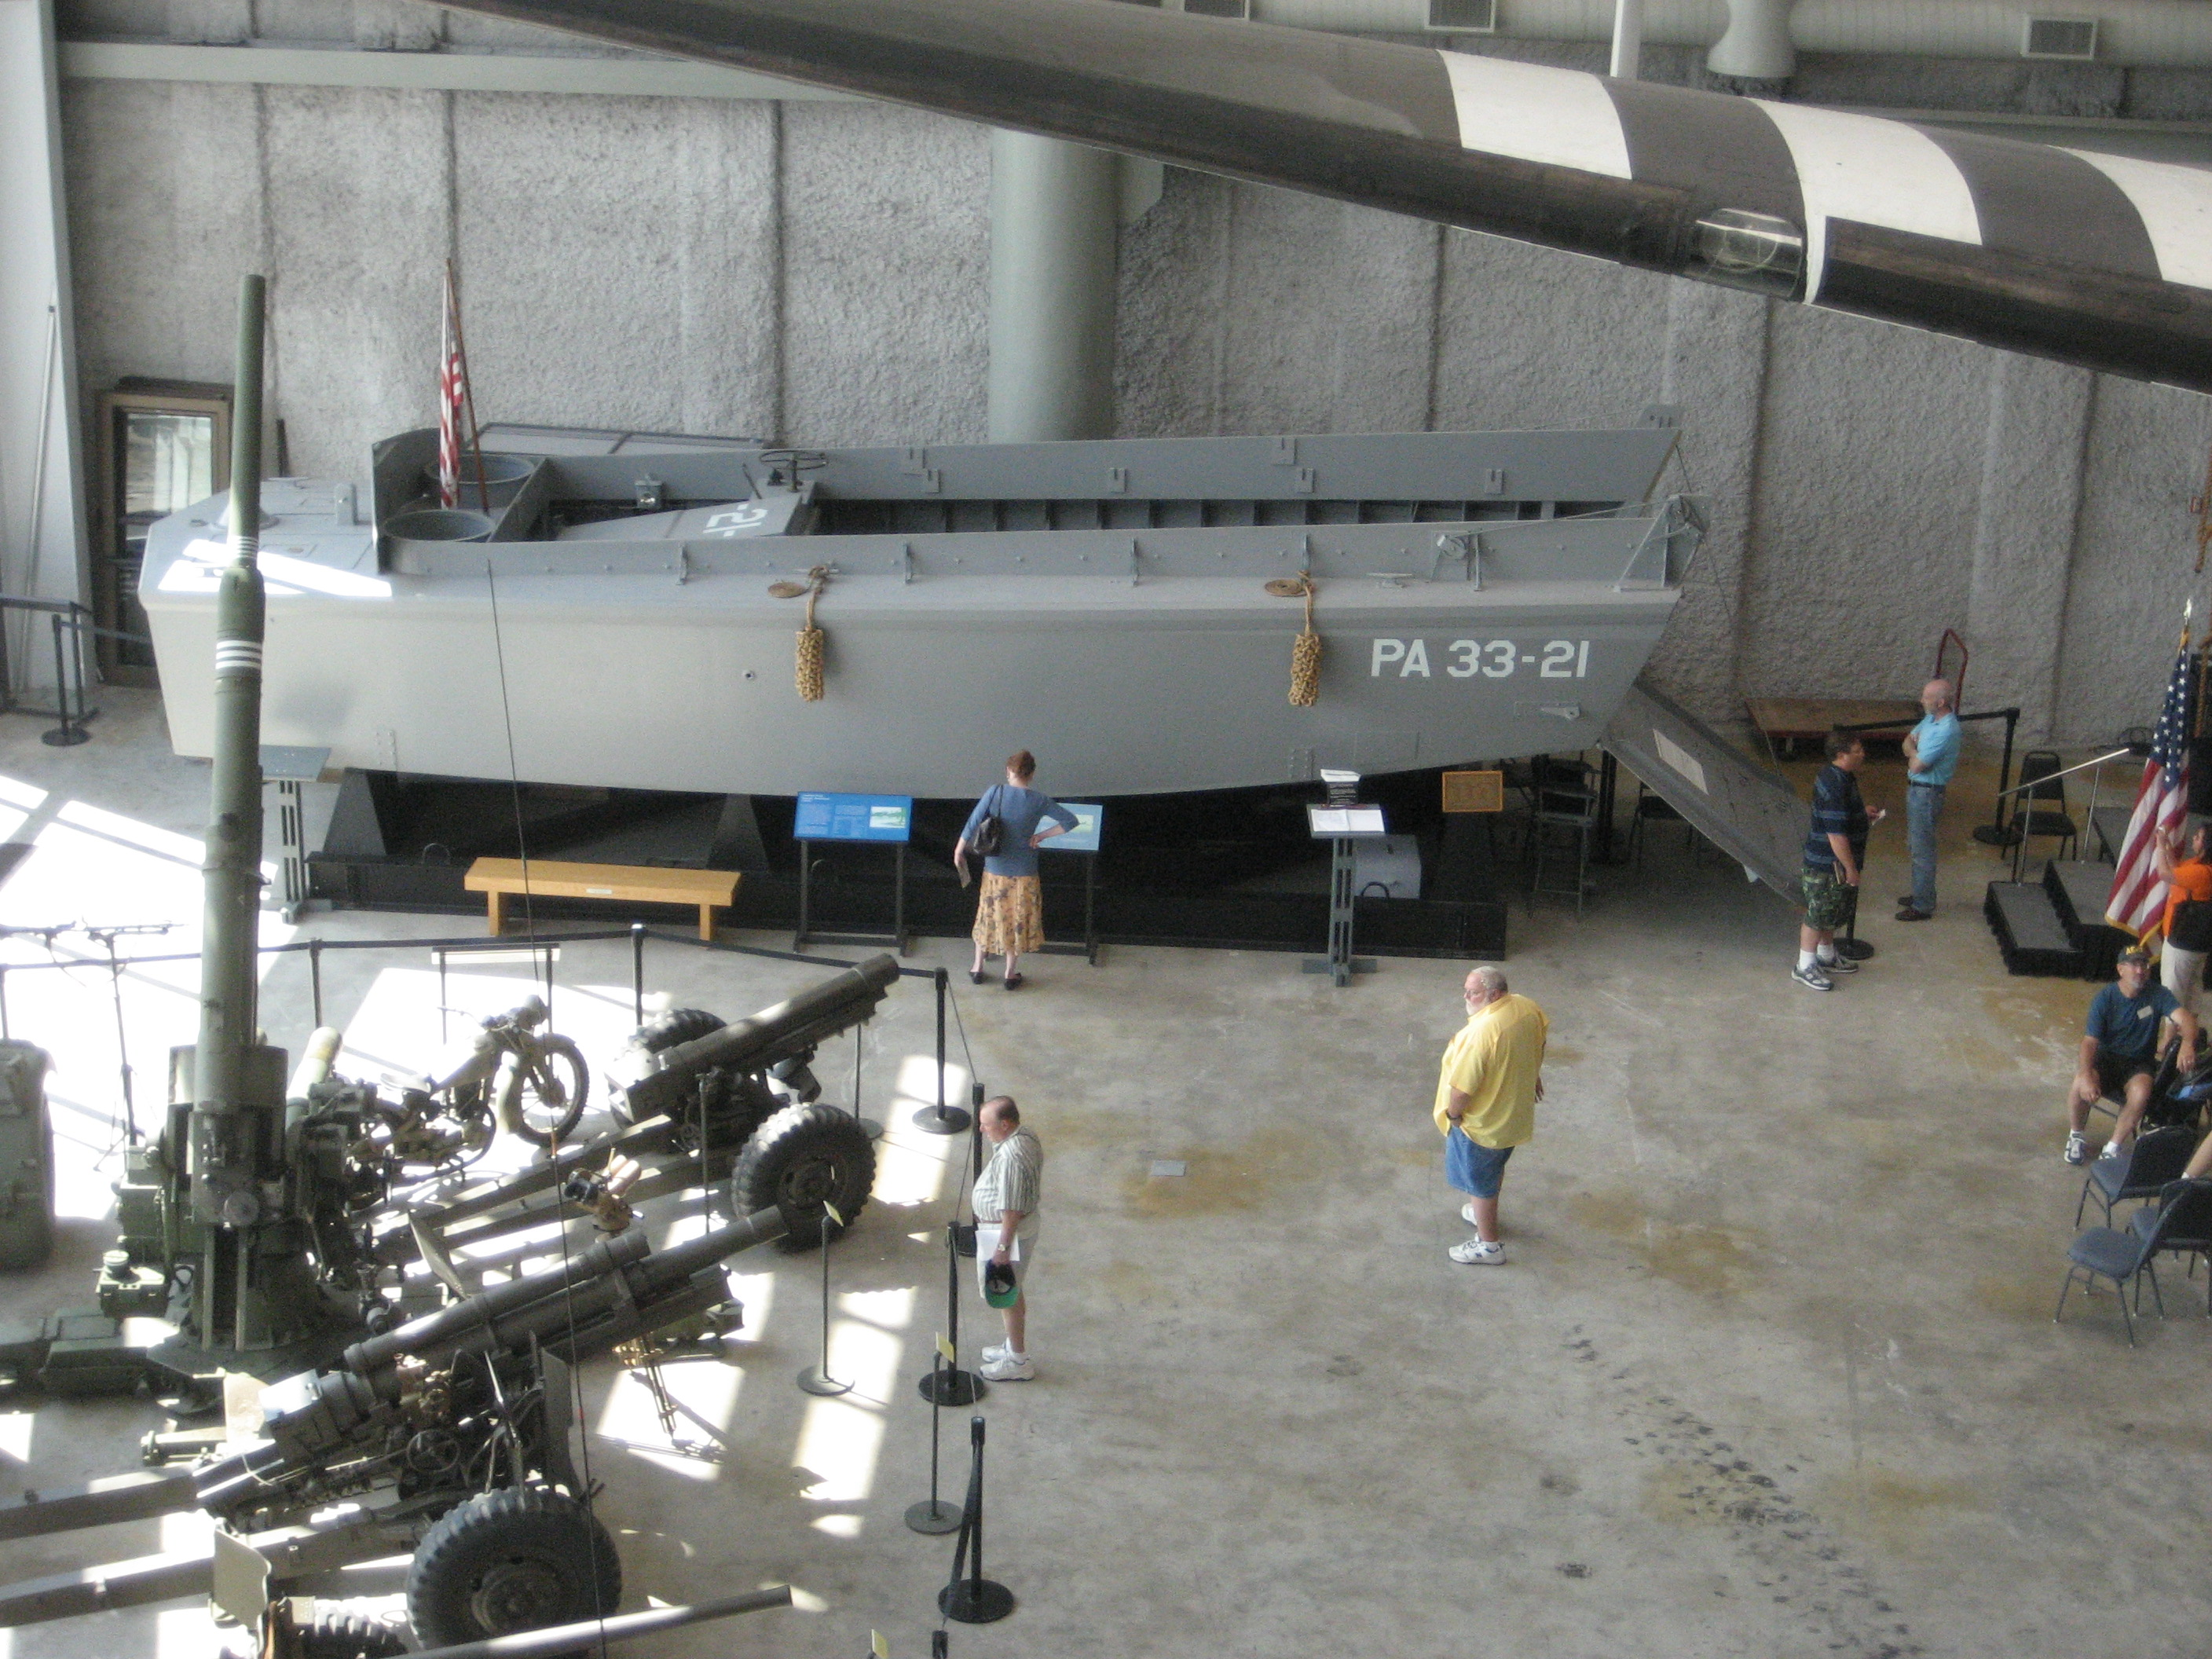 A Higgins Boat and various pieces of artillery on display.